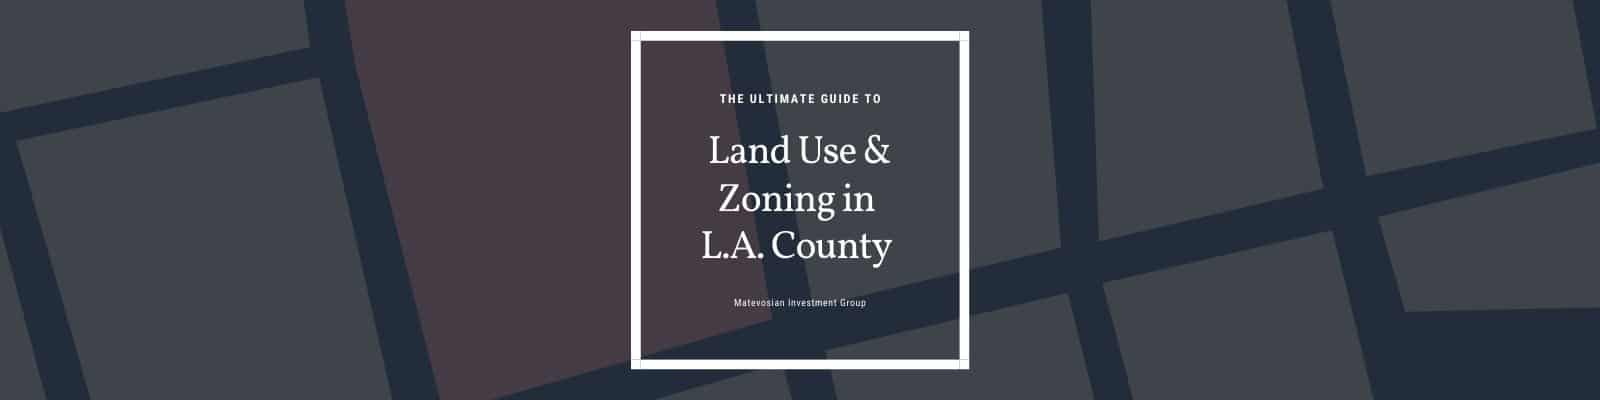 land use and zoning guide graphic